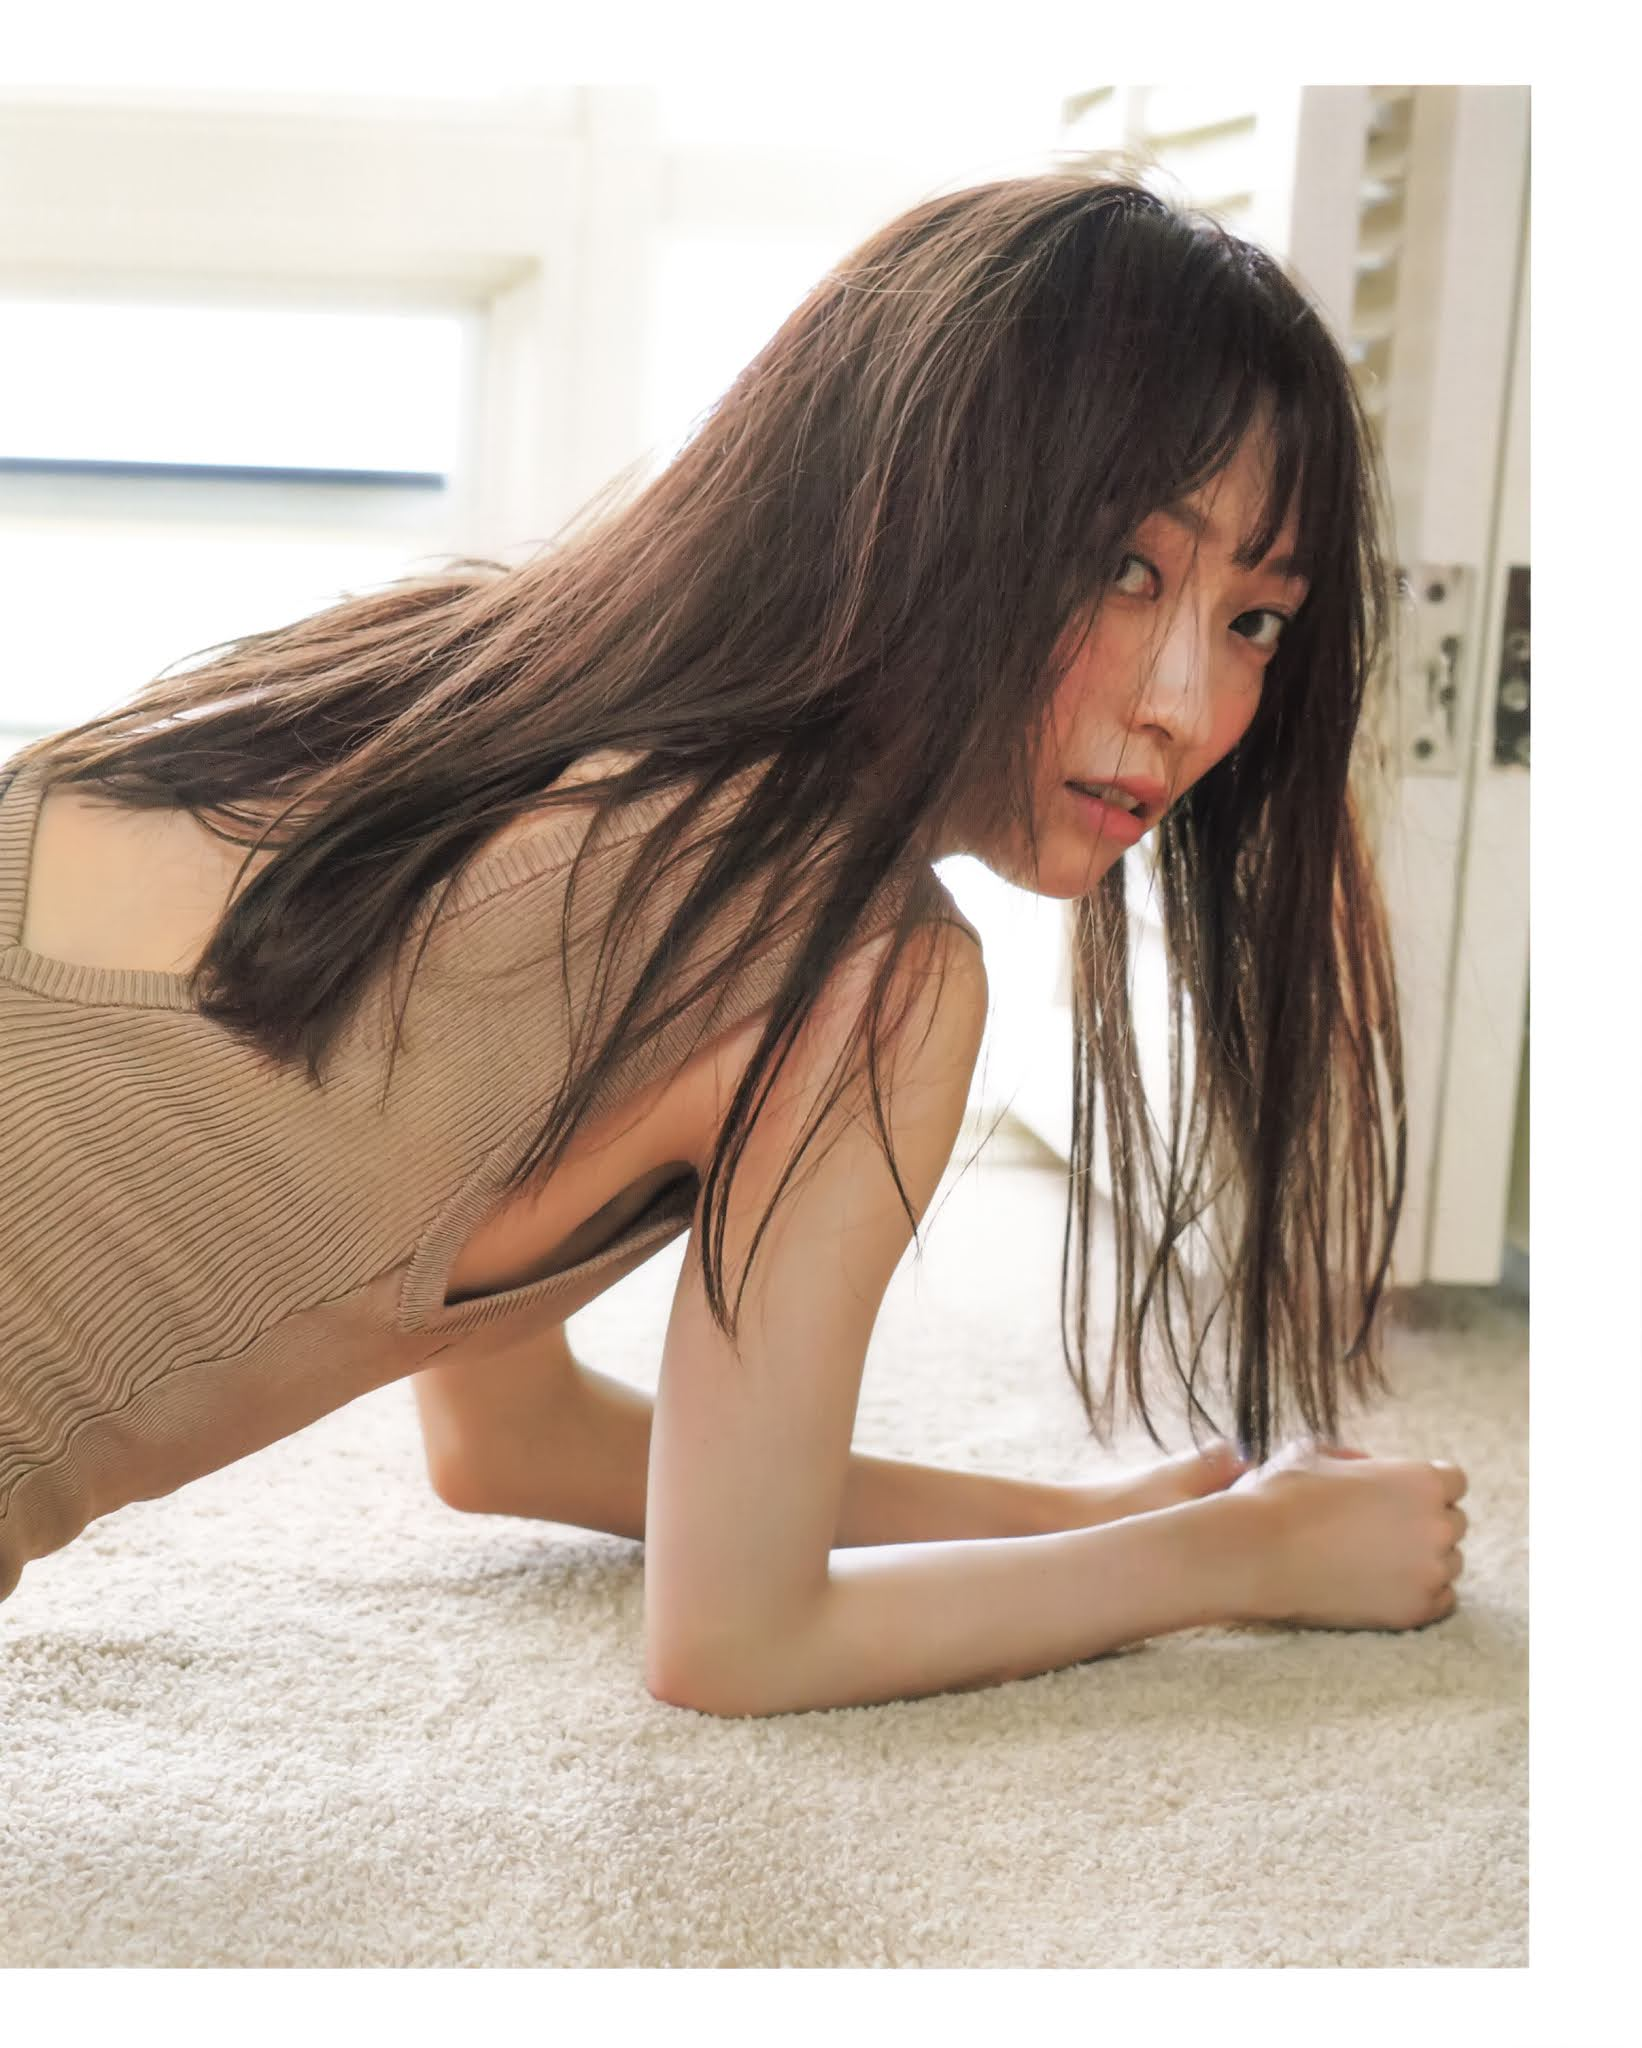 23yearold body fascinated in Hawaii Maho Yamaguchi043